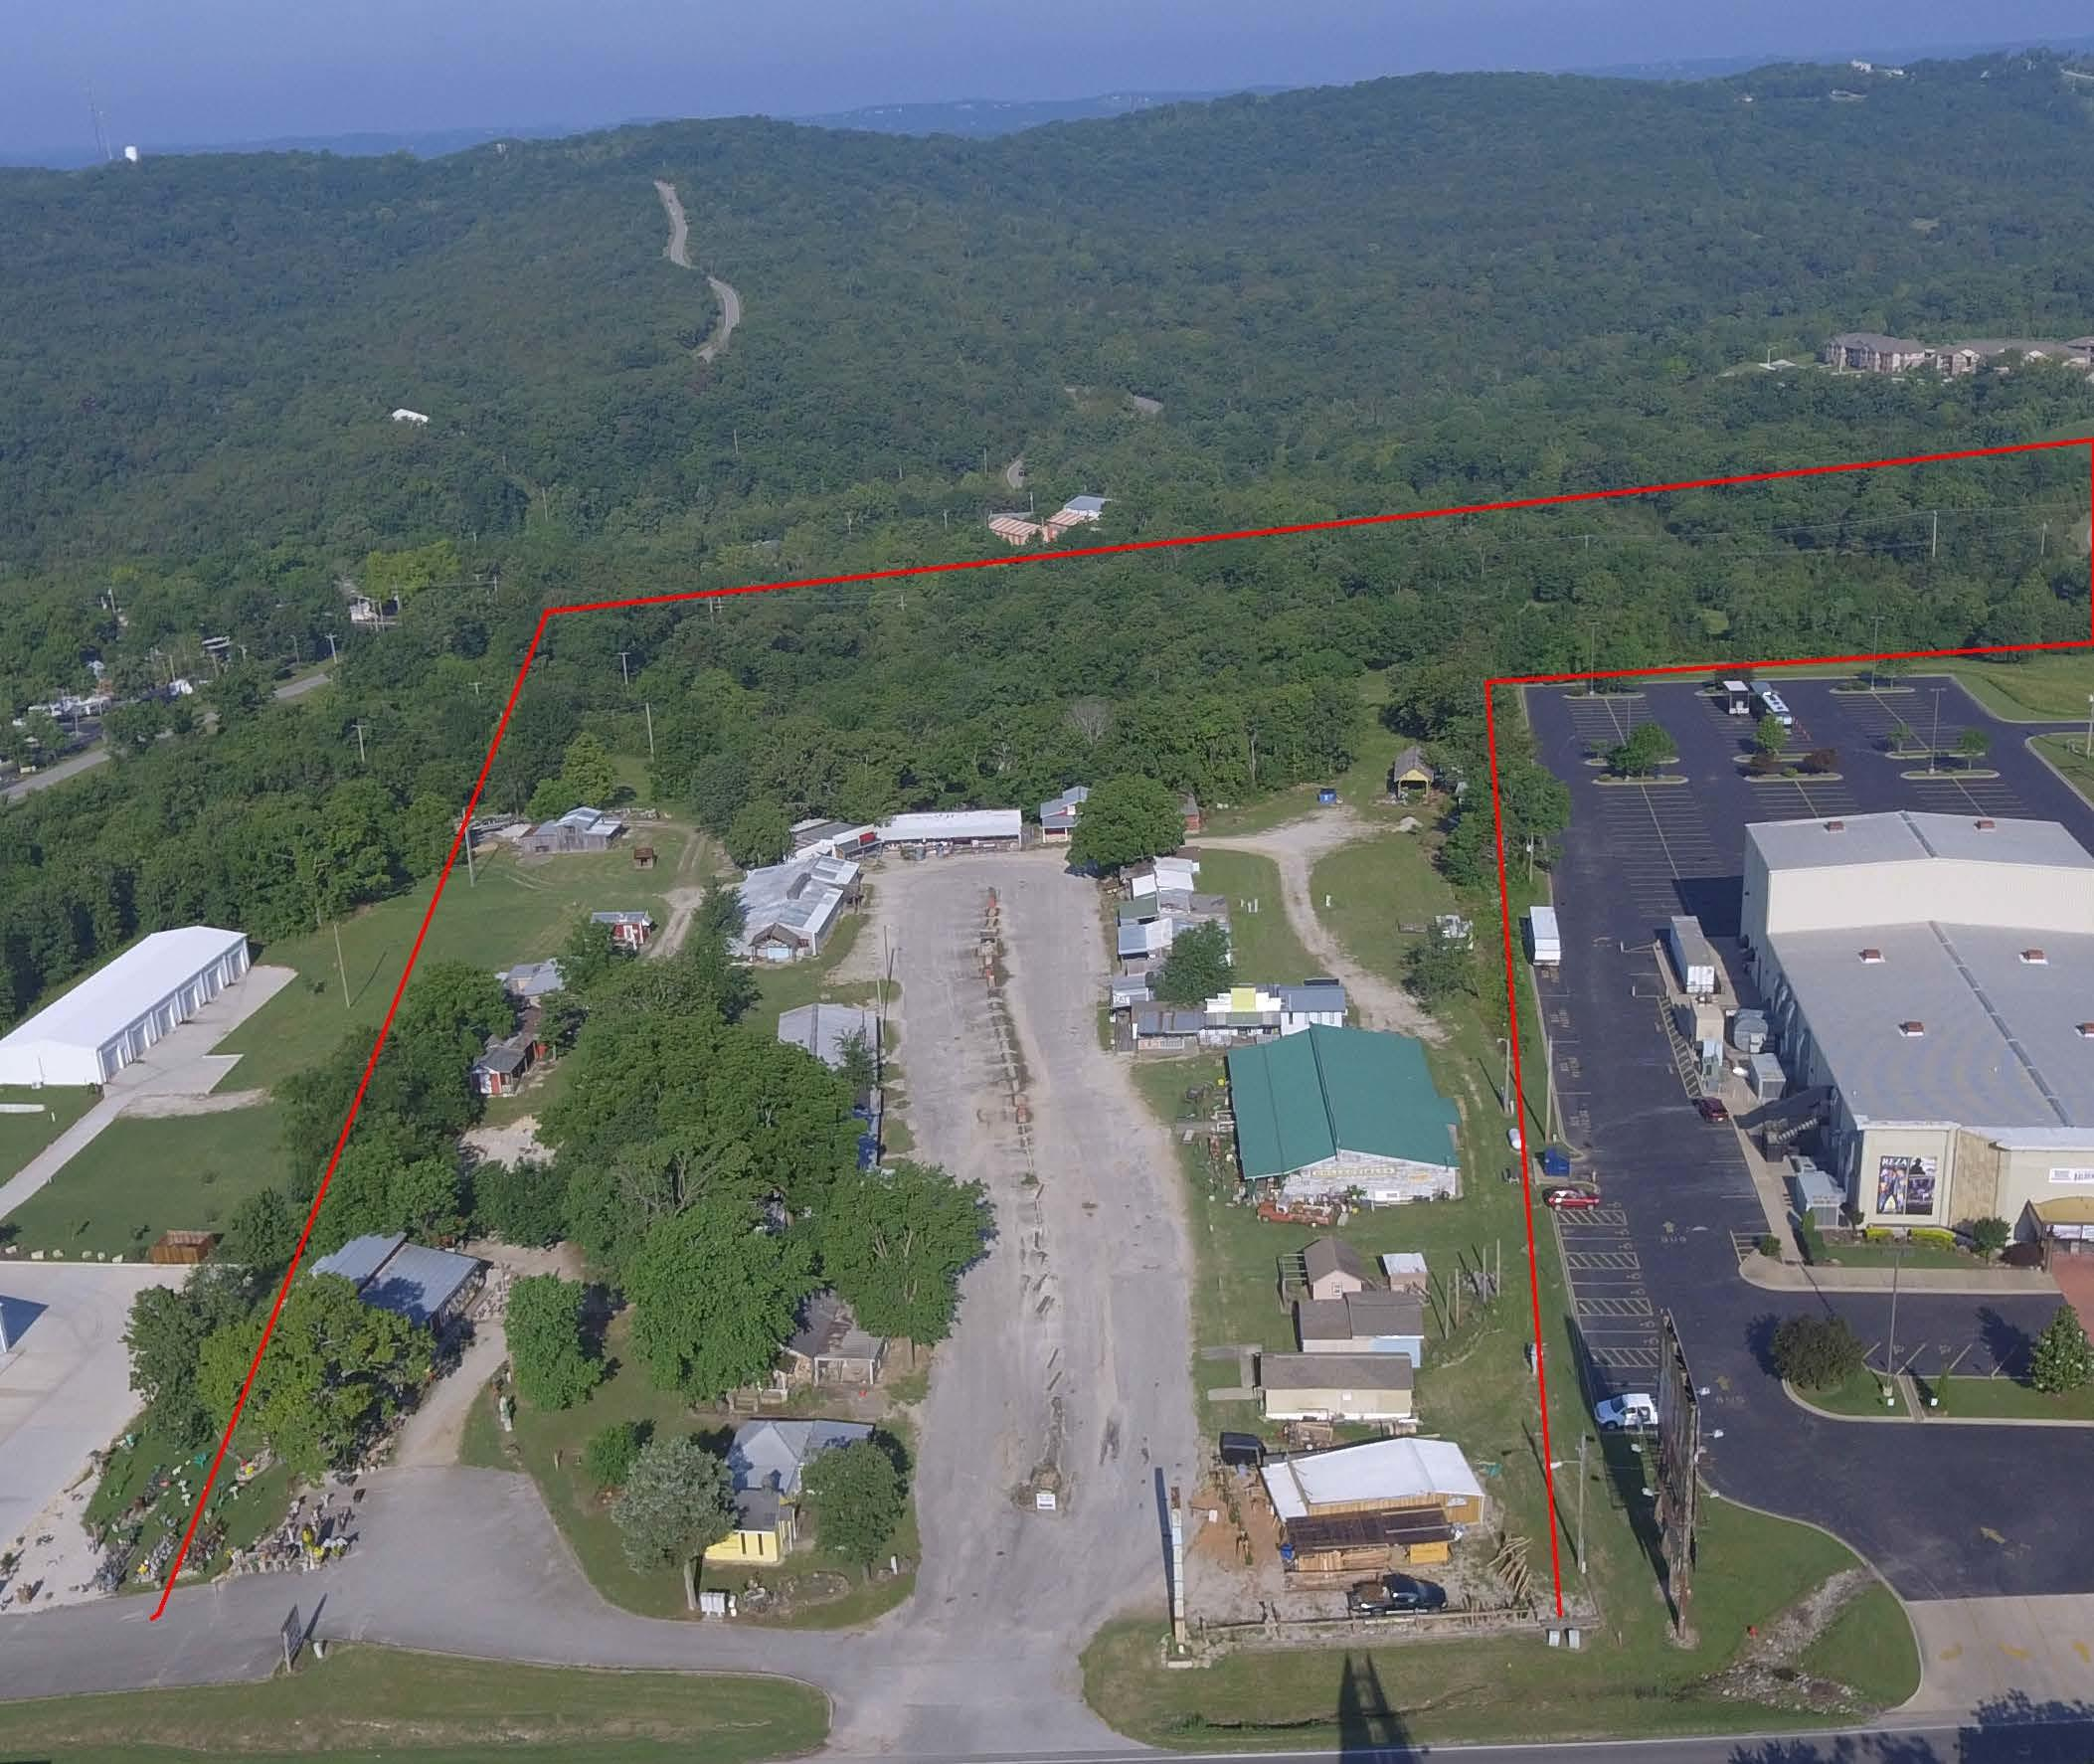 673 State Hwy. Branson, MO 65616